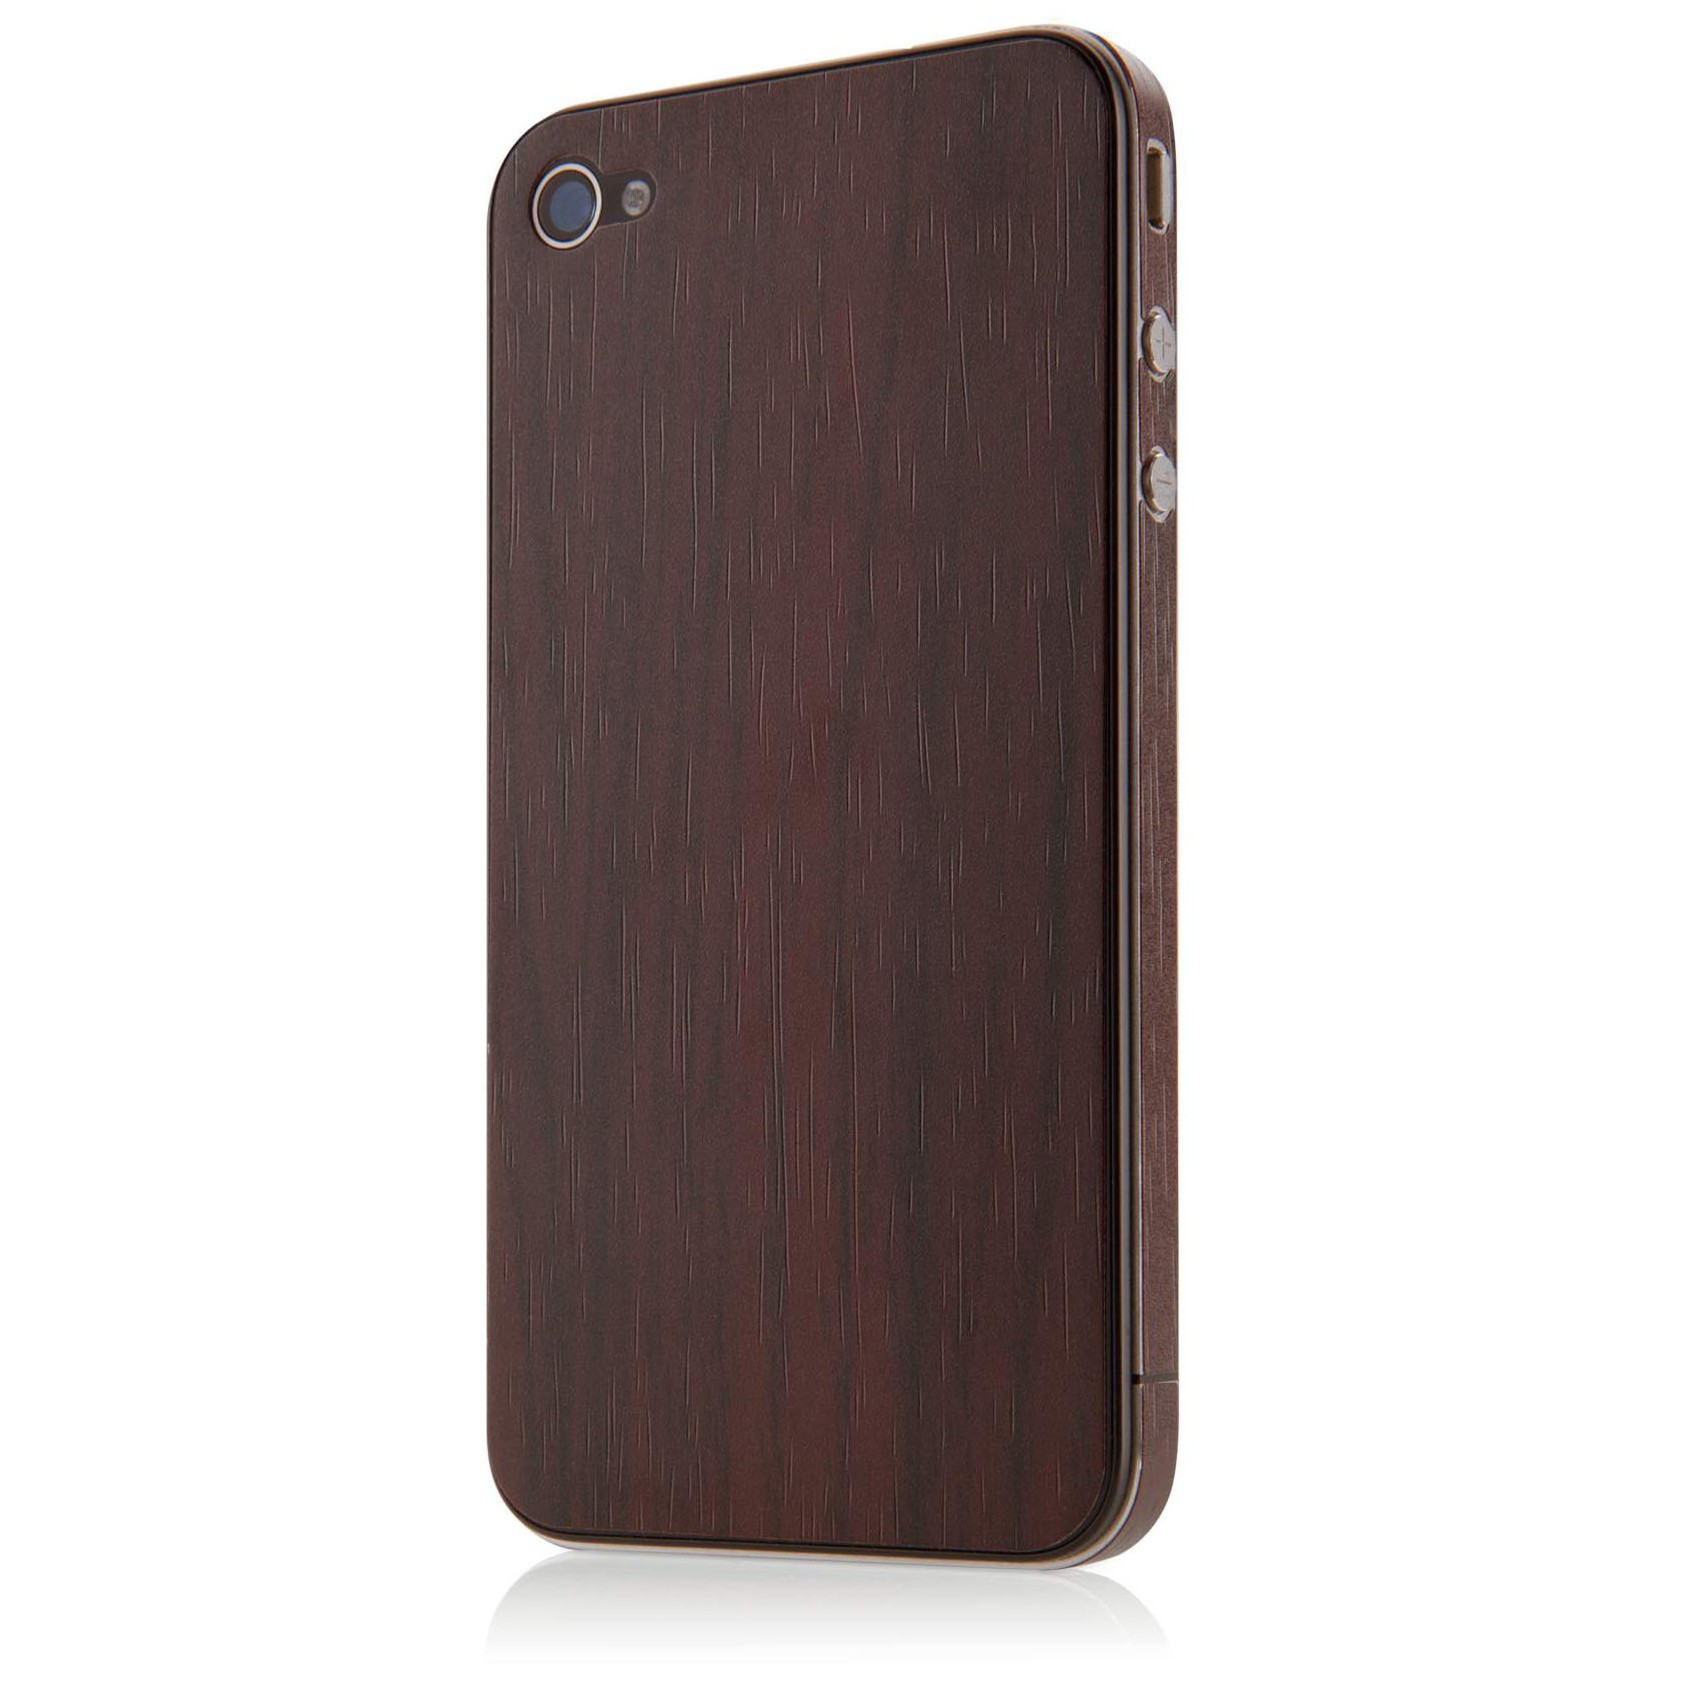 Belkin Wood Grain Sticker til iPhone 4/4S - Walnut